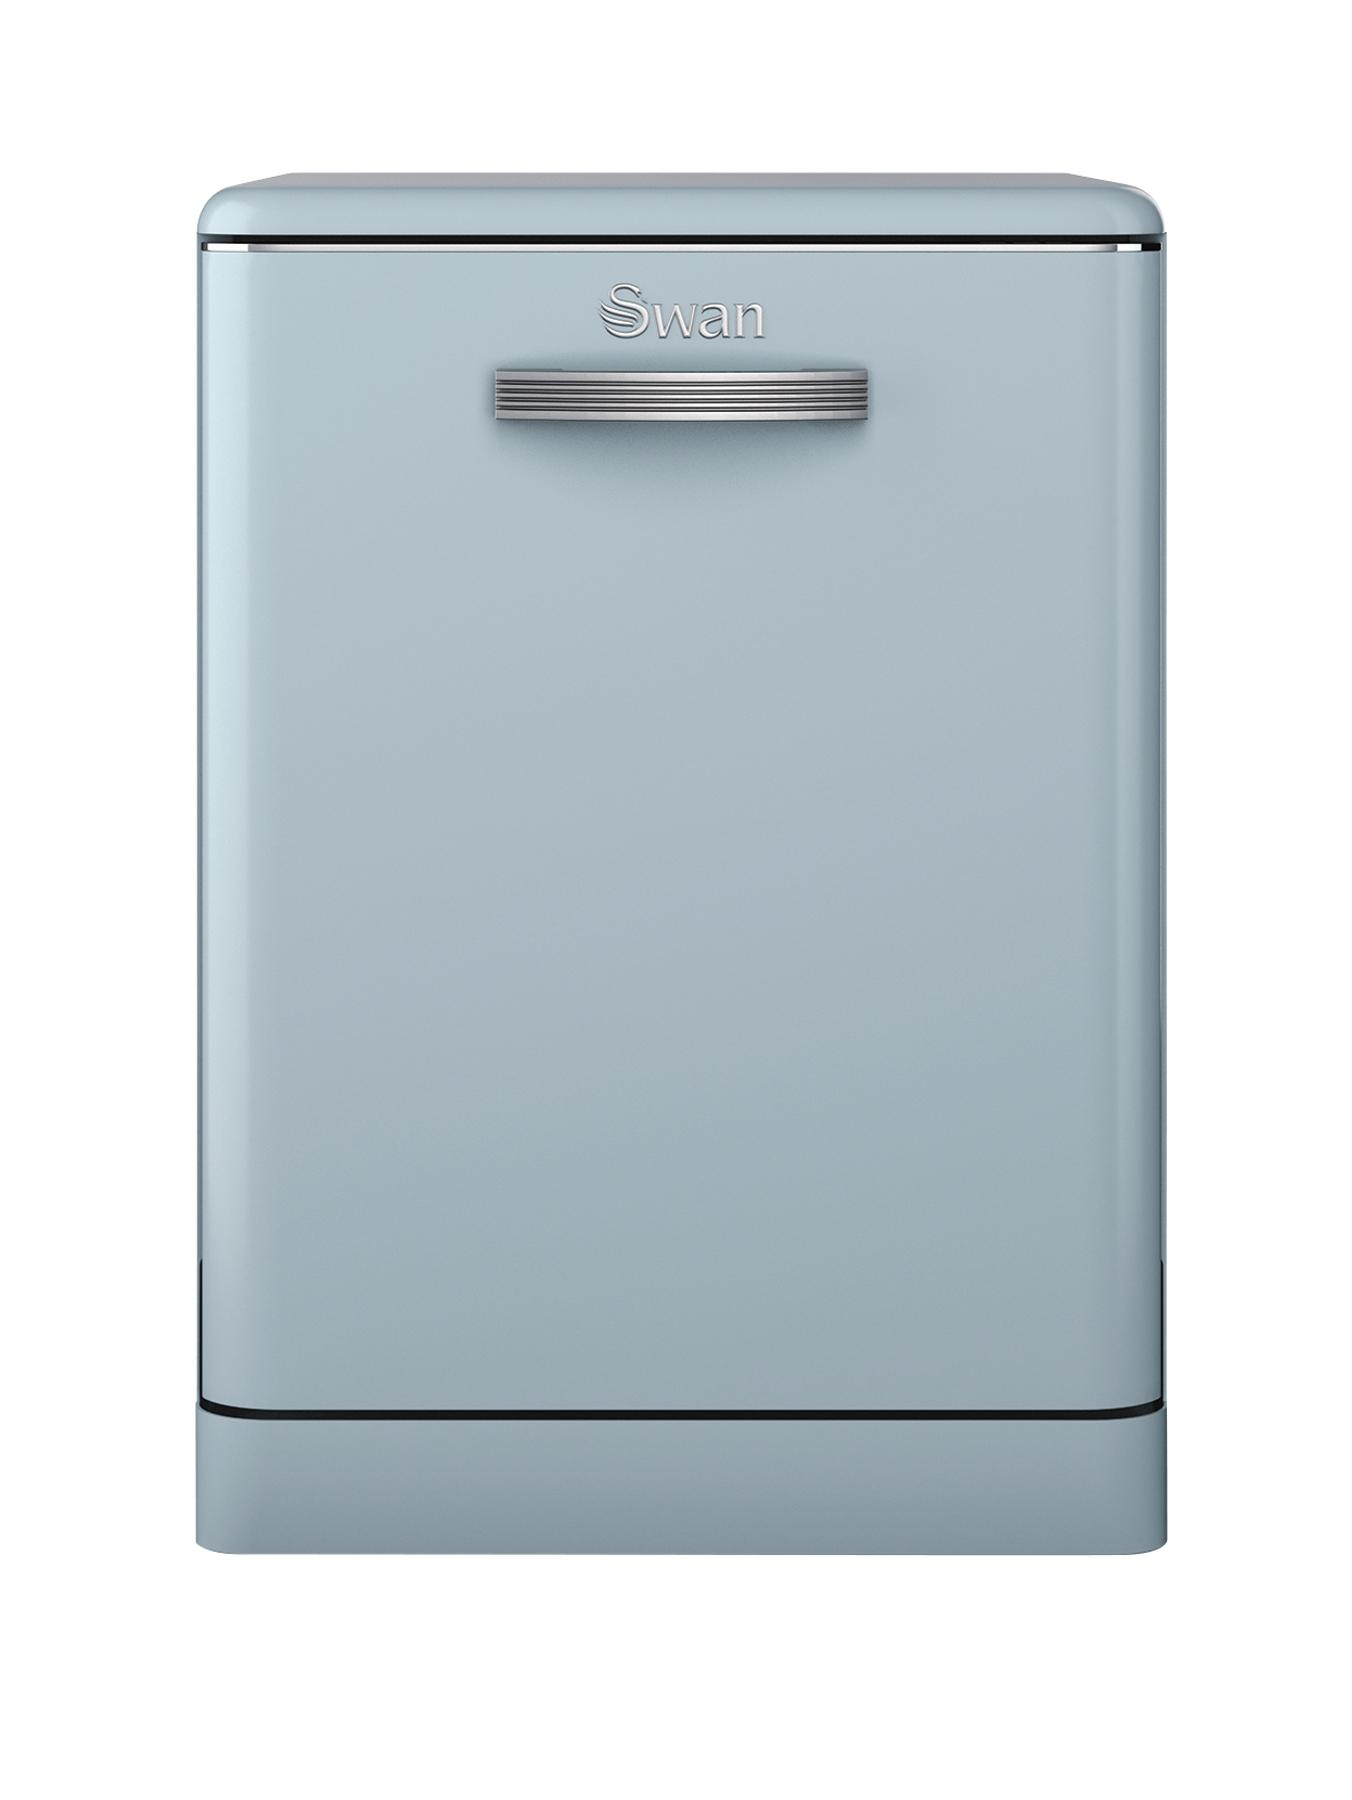 SDW7040BLUN Retro Dishwasher - Blue